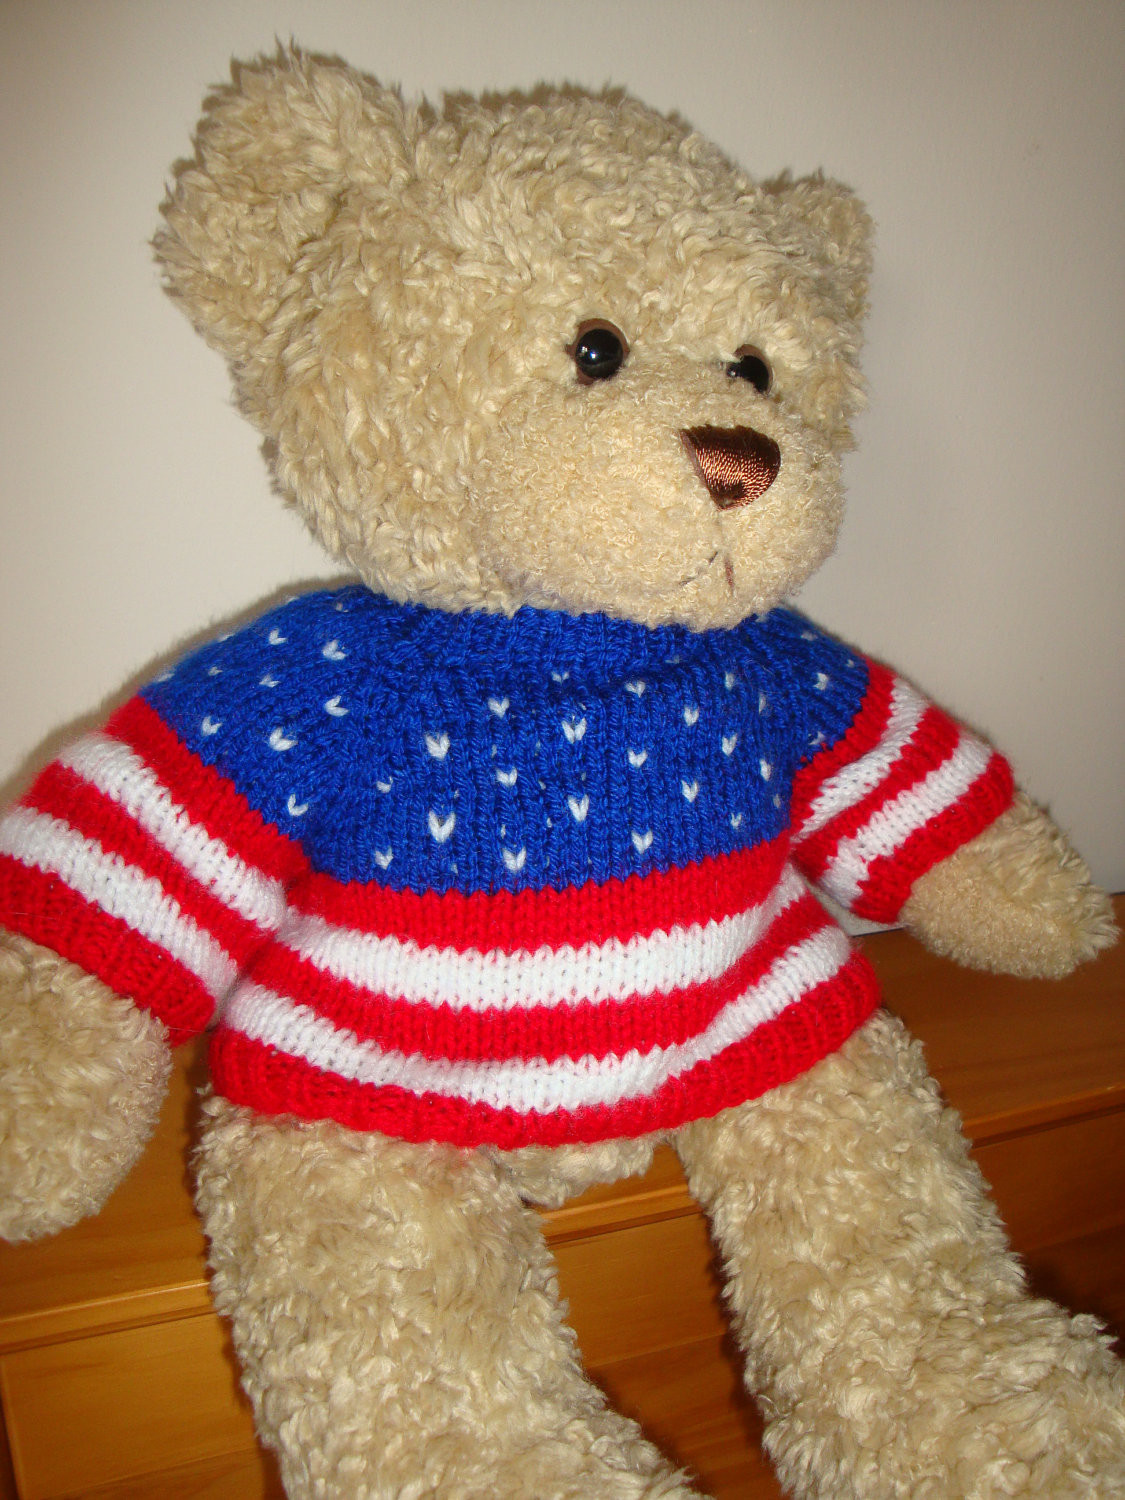 Teddy Bear Sweater Hand knitted Stars and Stripes USA